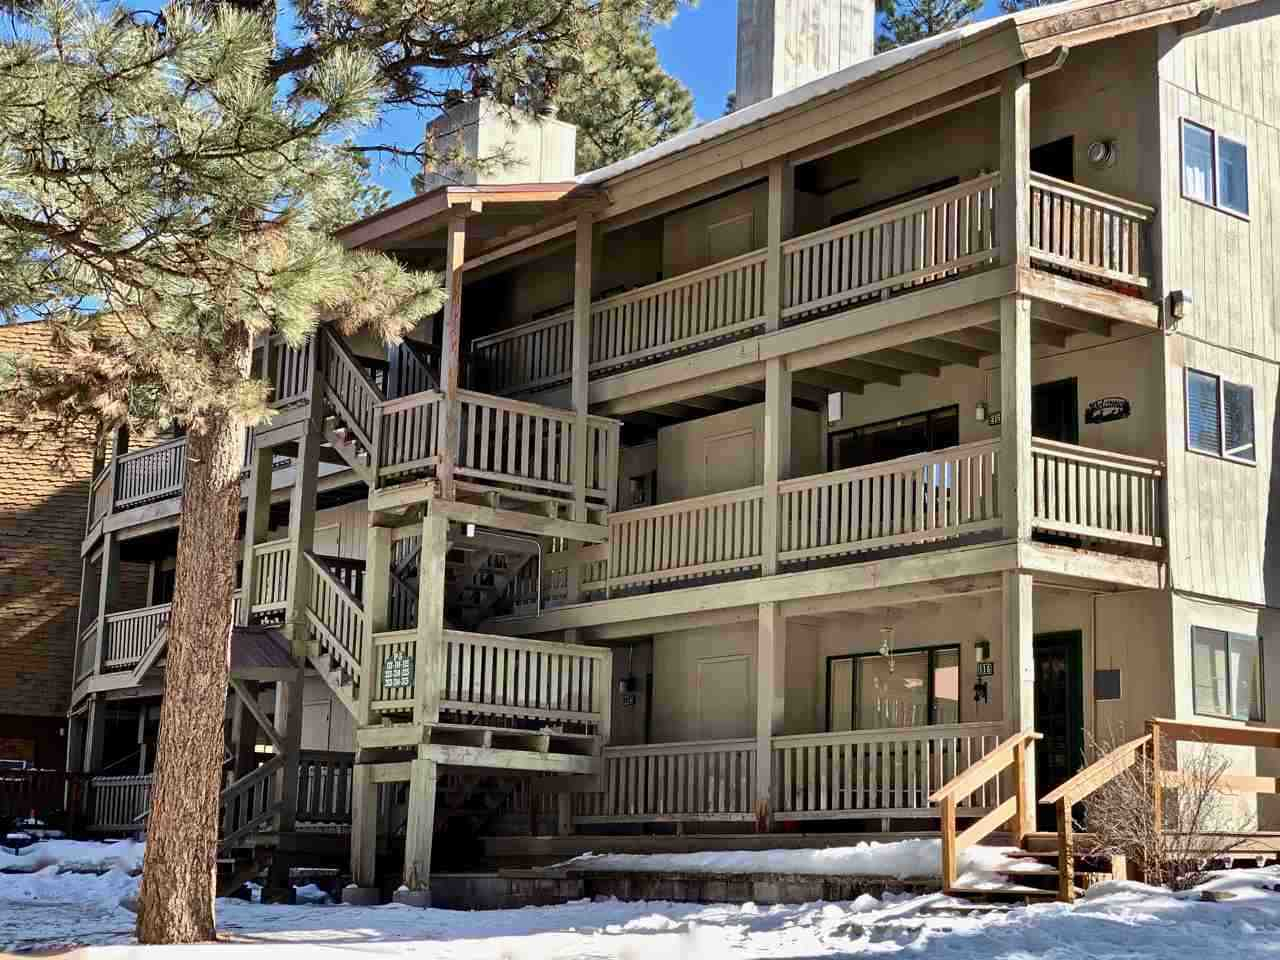 64 Mammoth Mountain Rd P5 Unit 315, Angel Fire, NM 87710